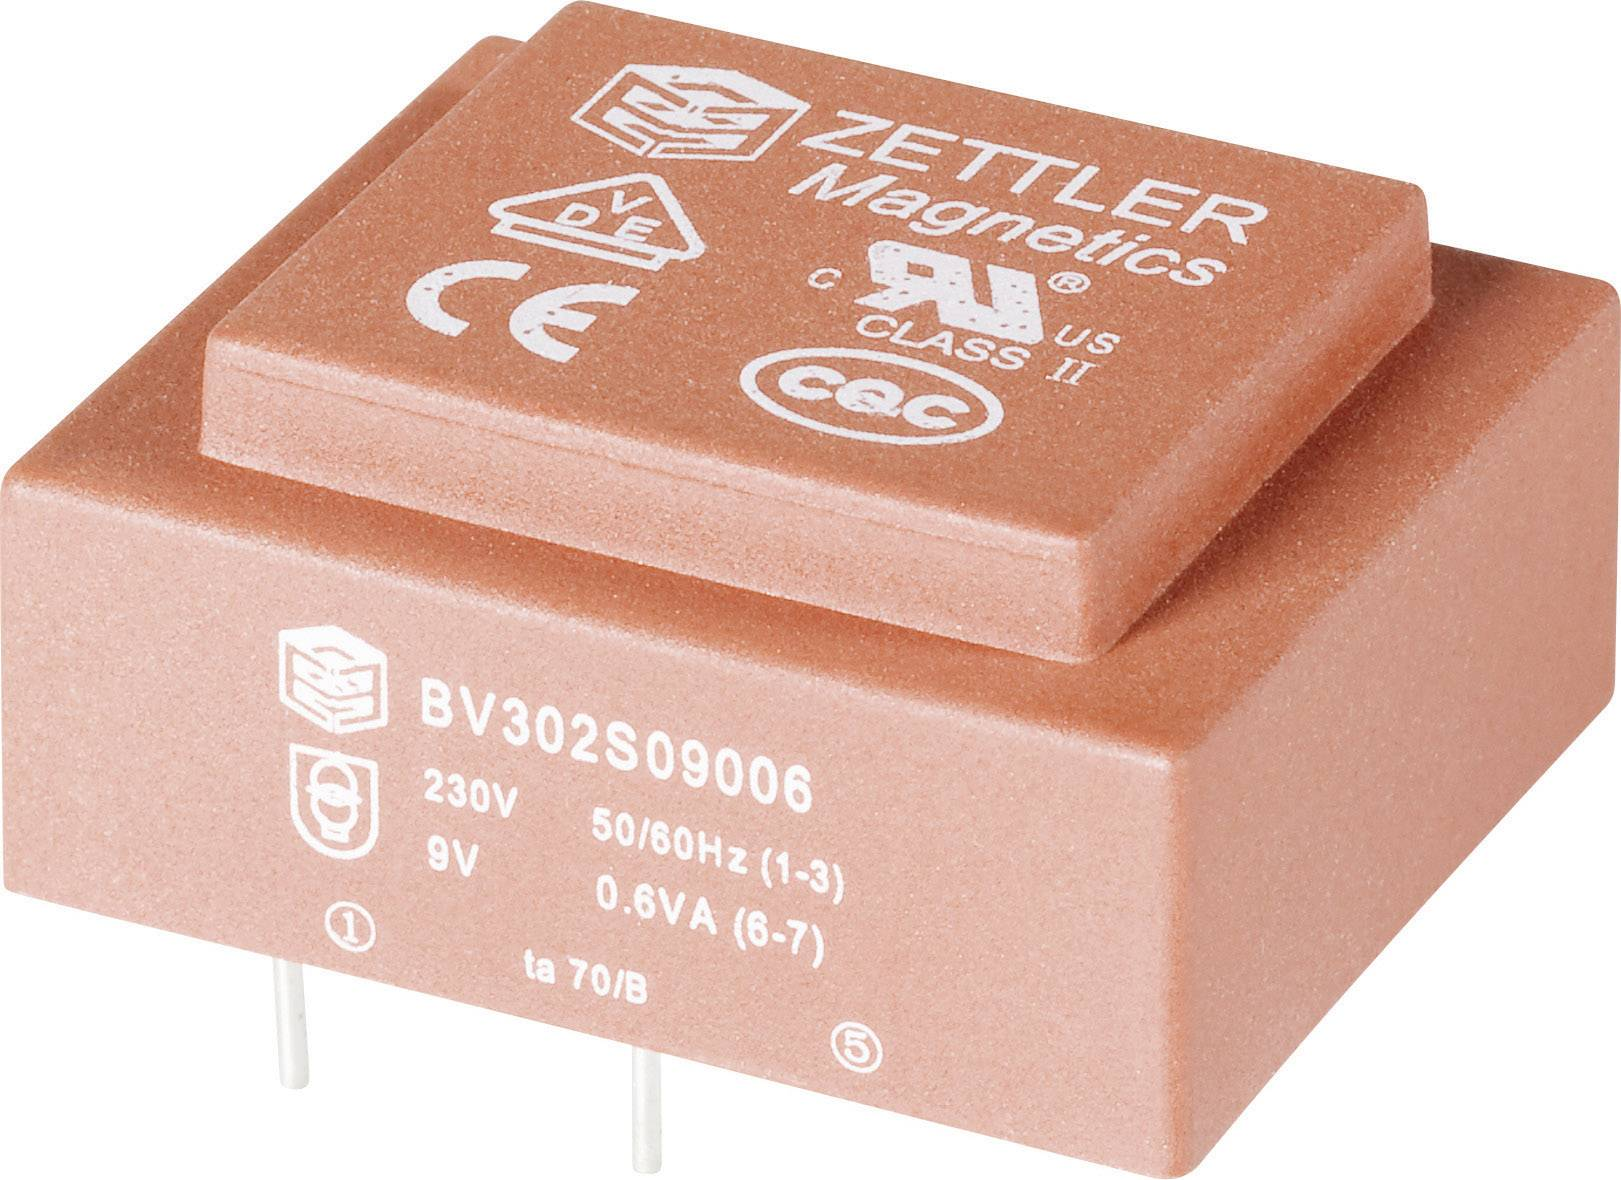 Transformátor do DPS Zettler Magnetics El30, 230 V/12 V, 50 mA, 2 VA